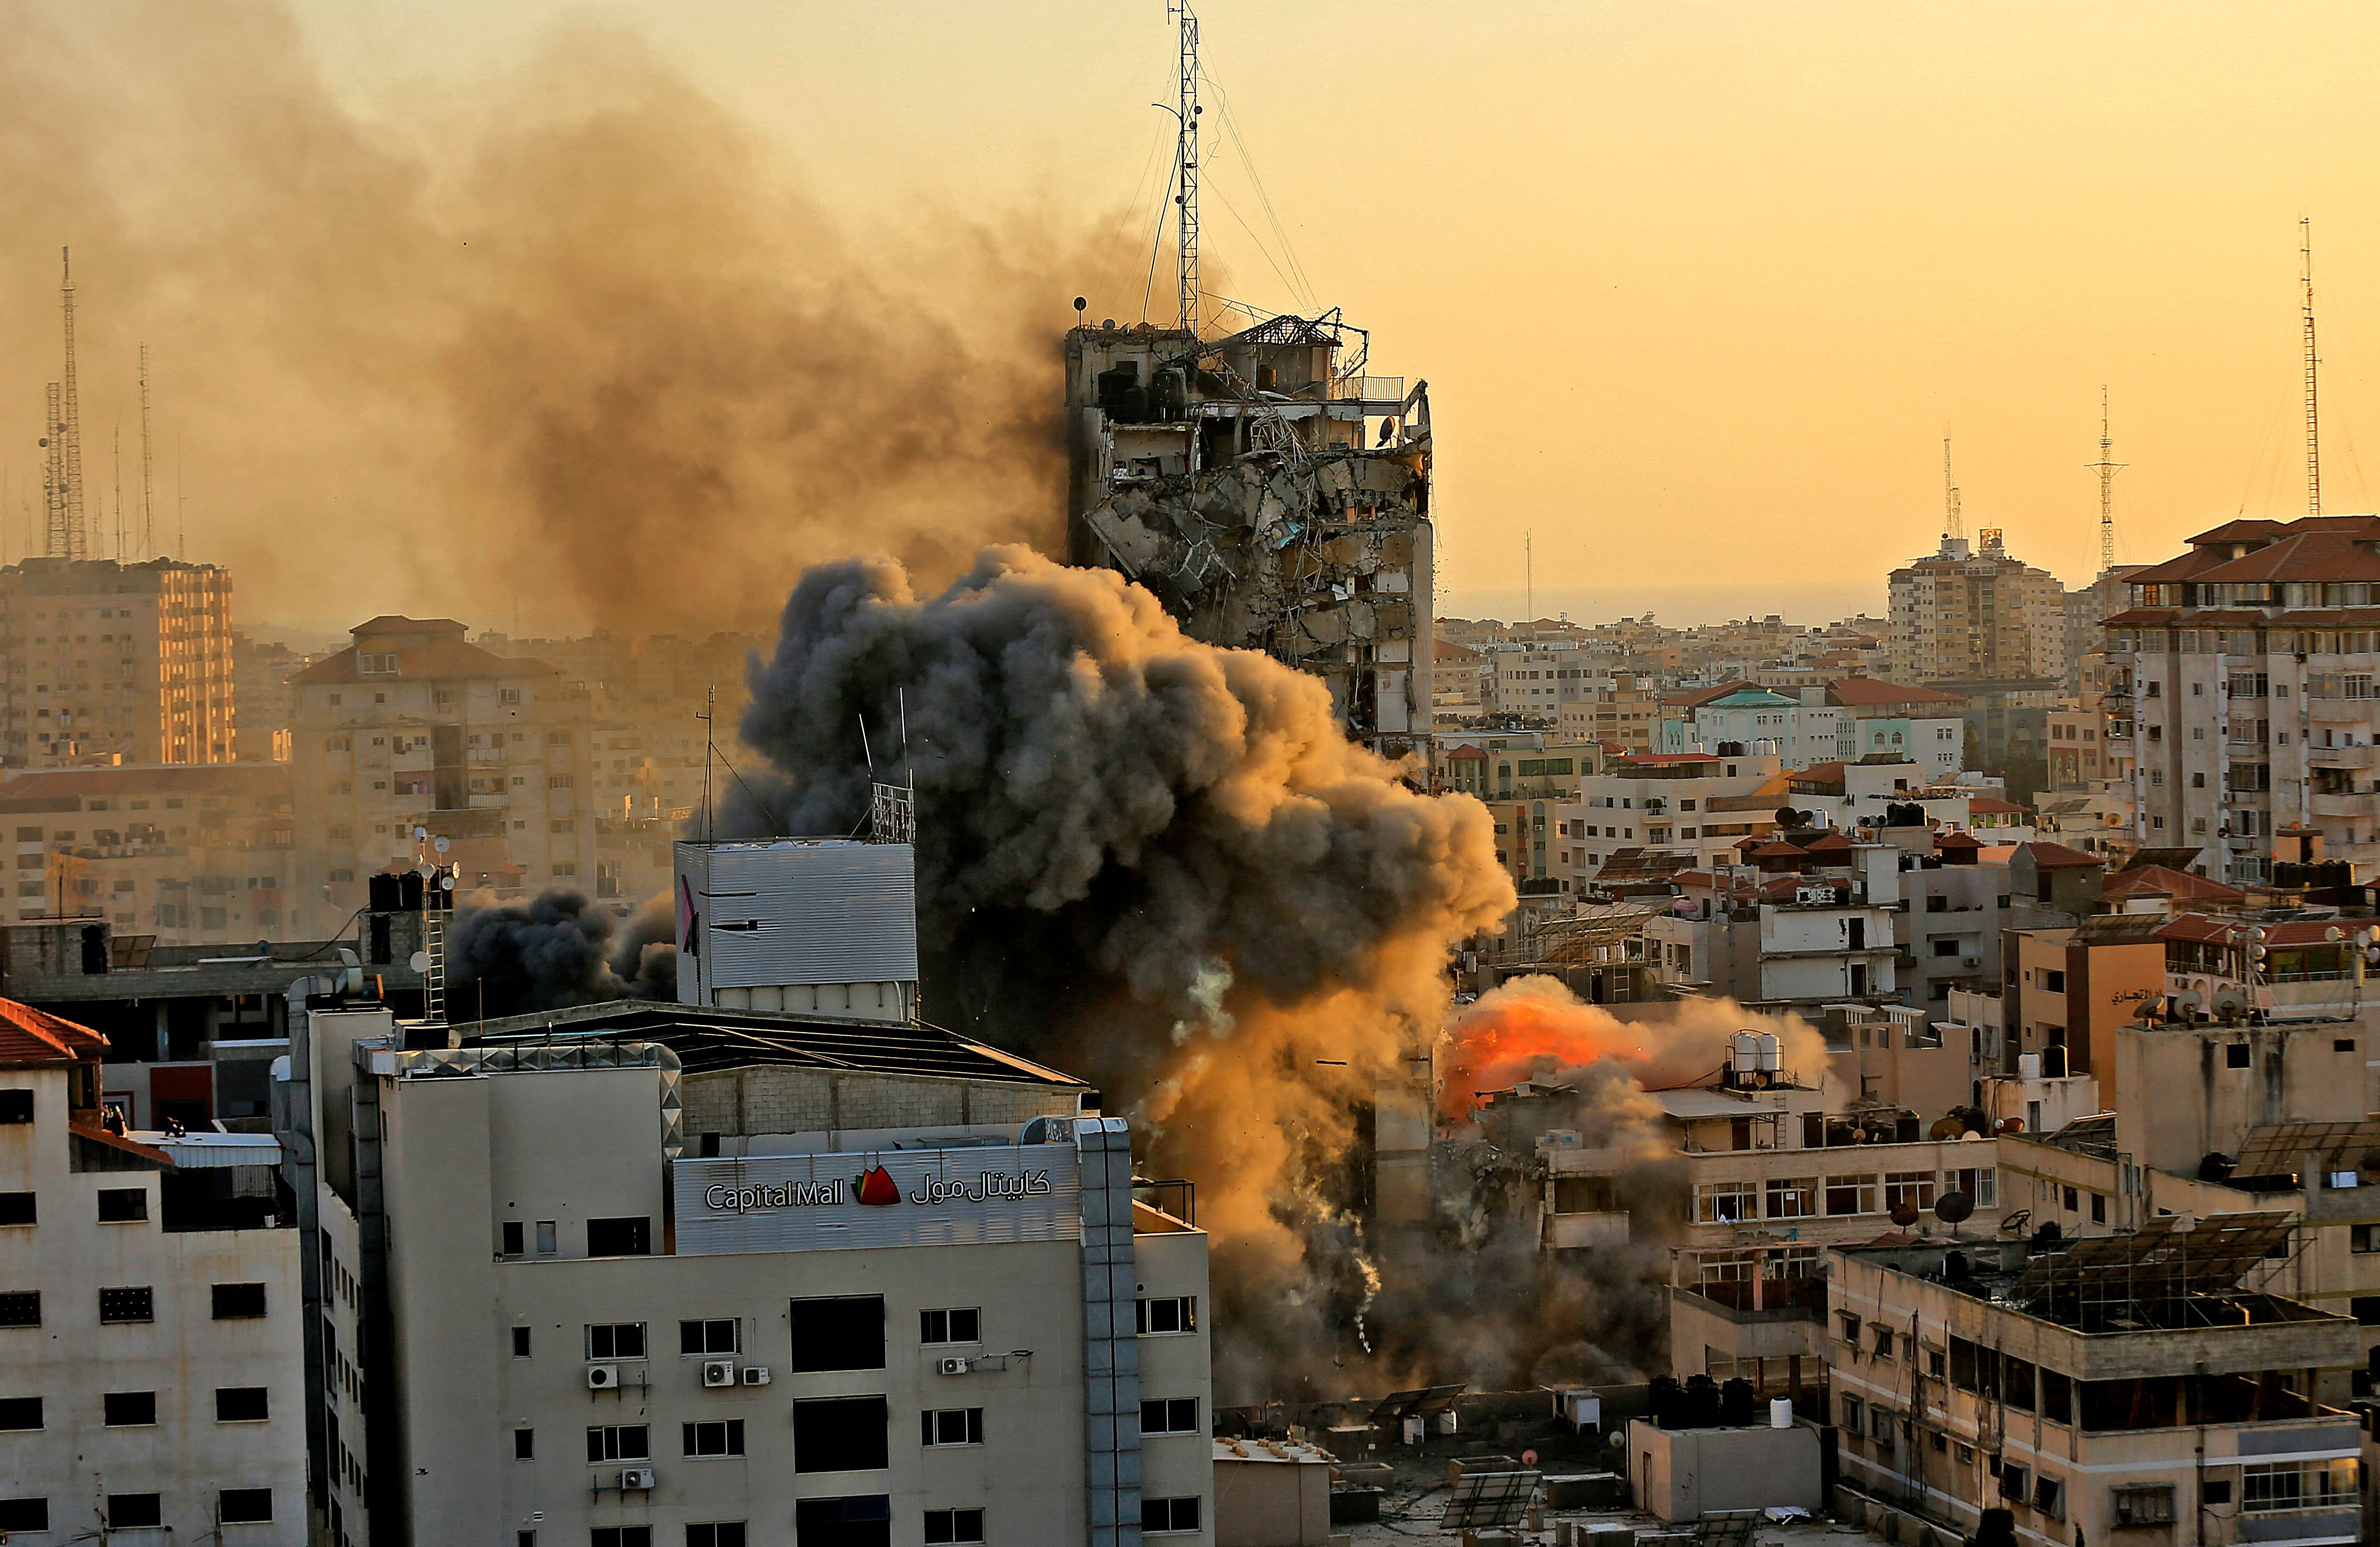 Gaza tower housing AP, Al Jazeera collapses after missile strike